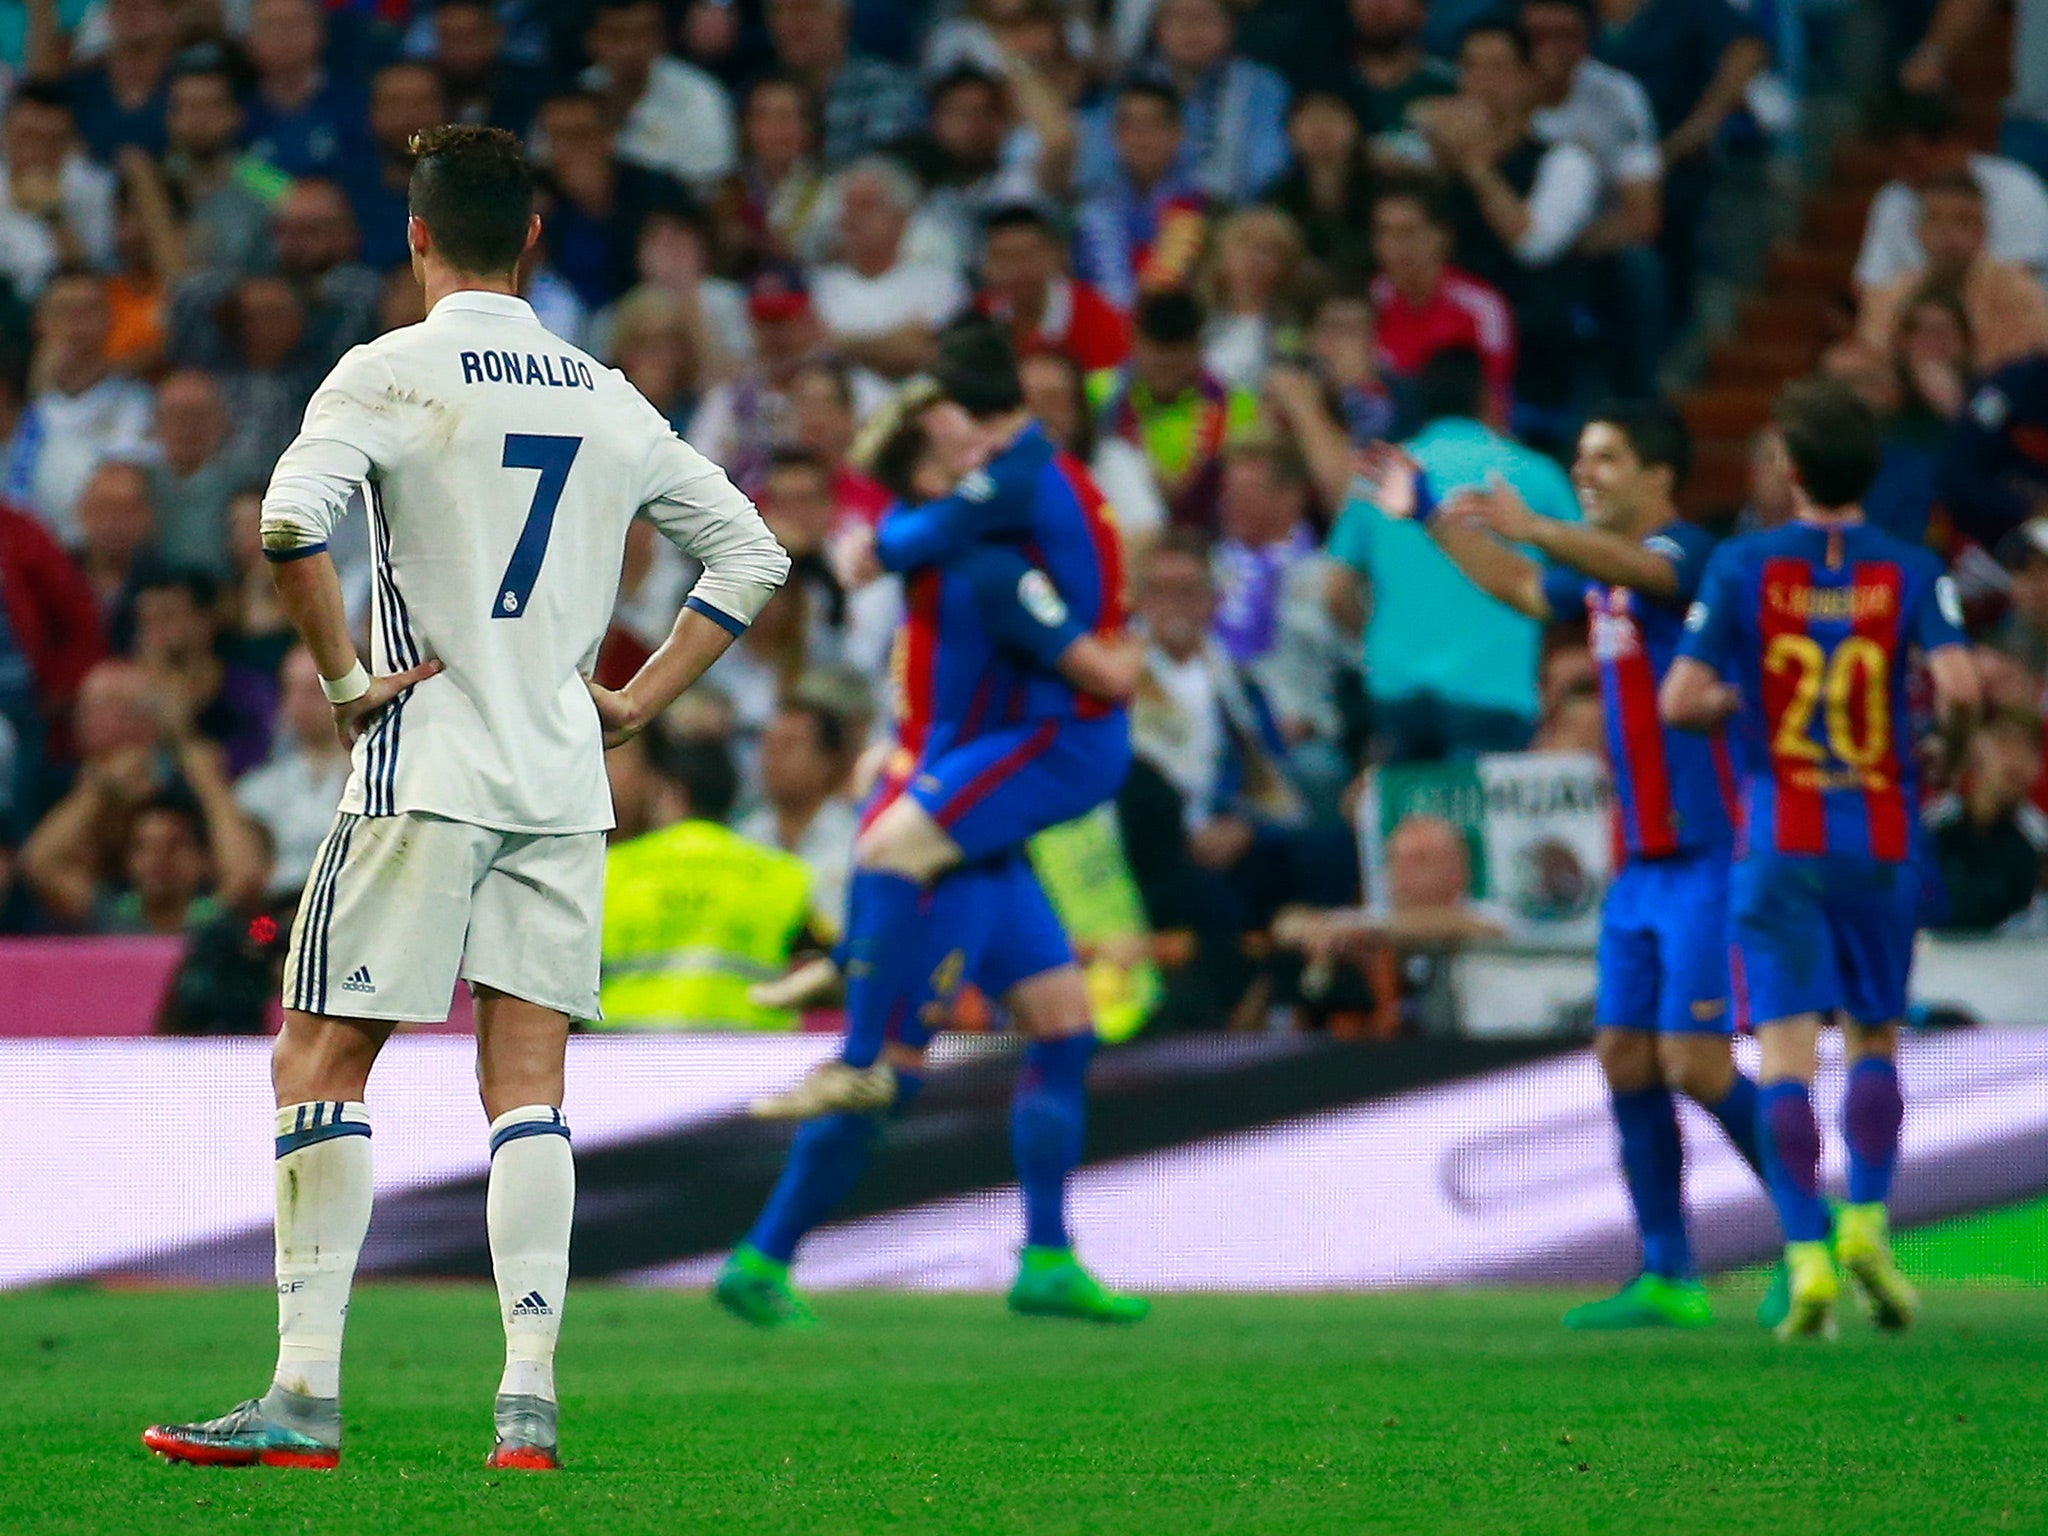 La Liga title race: What are Real Madrid and Barcelona's remaining fixtures?